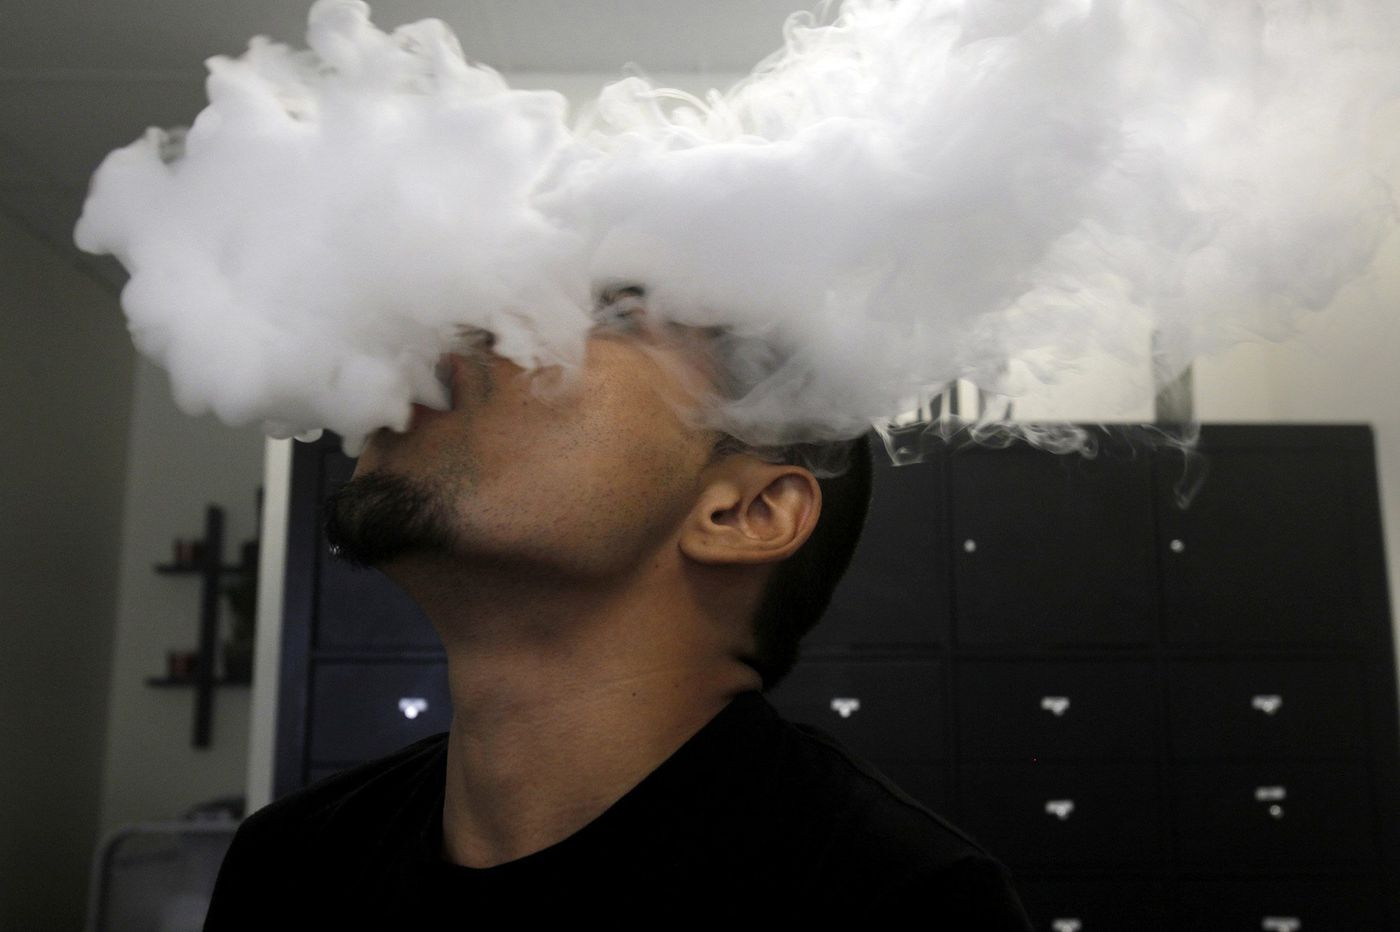 Vaping is blamed for mounting deaths, lung injuries. Here's what it's doing to kids' brains.